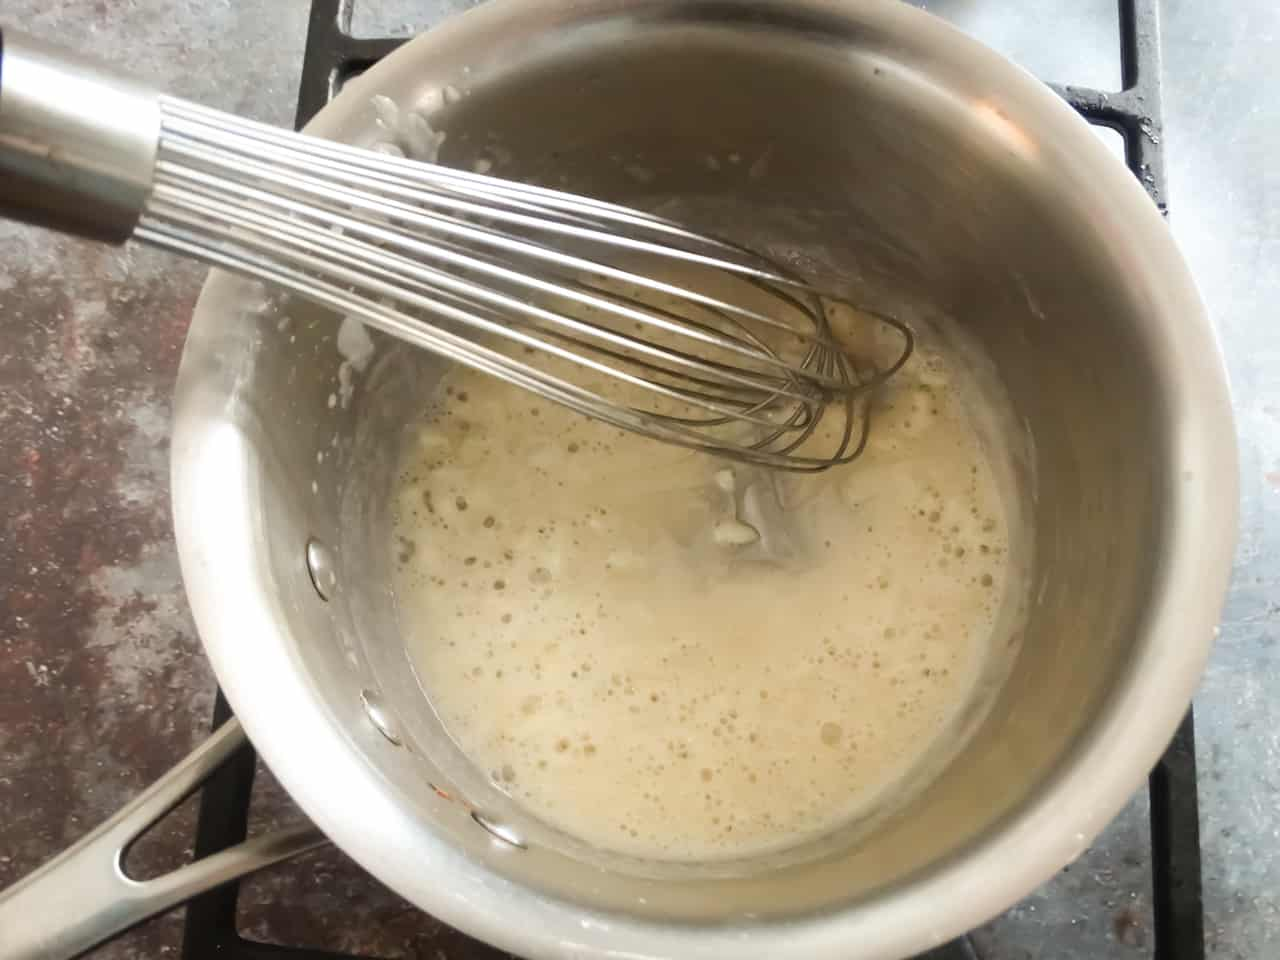 the roux for white cream sauce with milk in a pot being stirred with a whisk